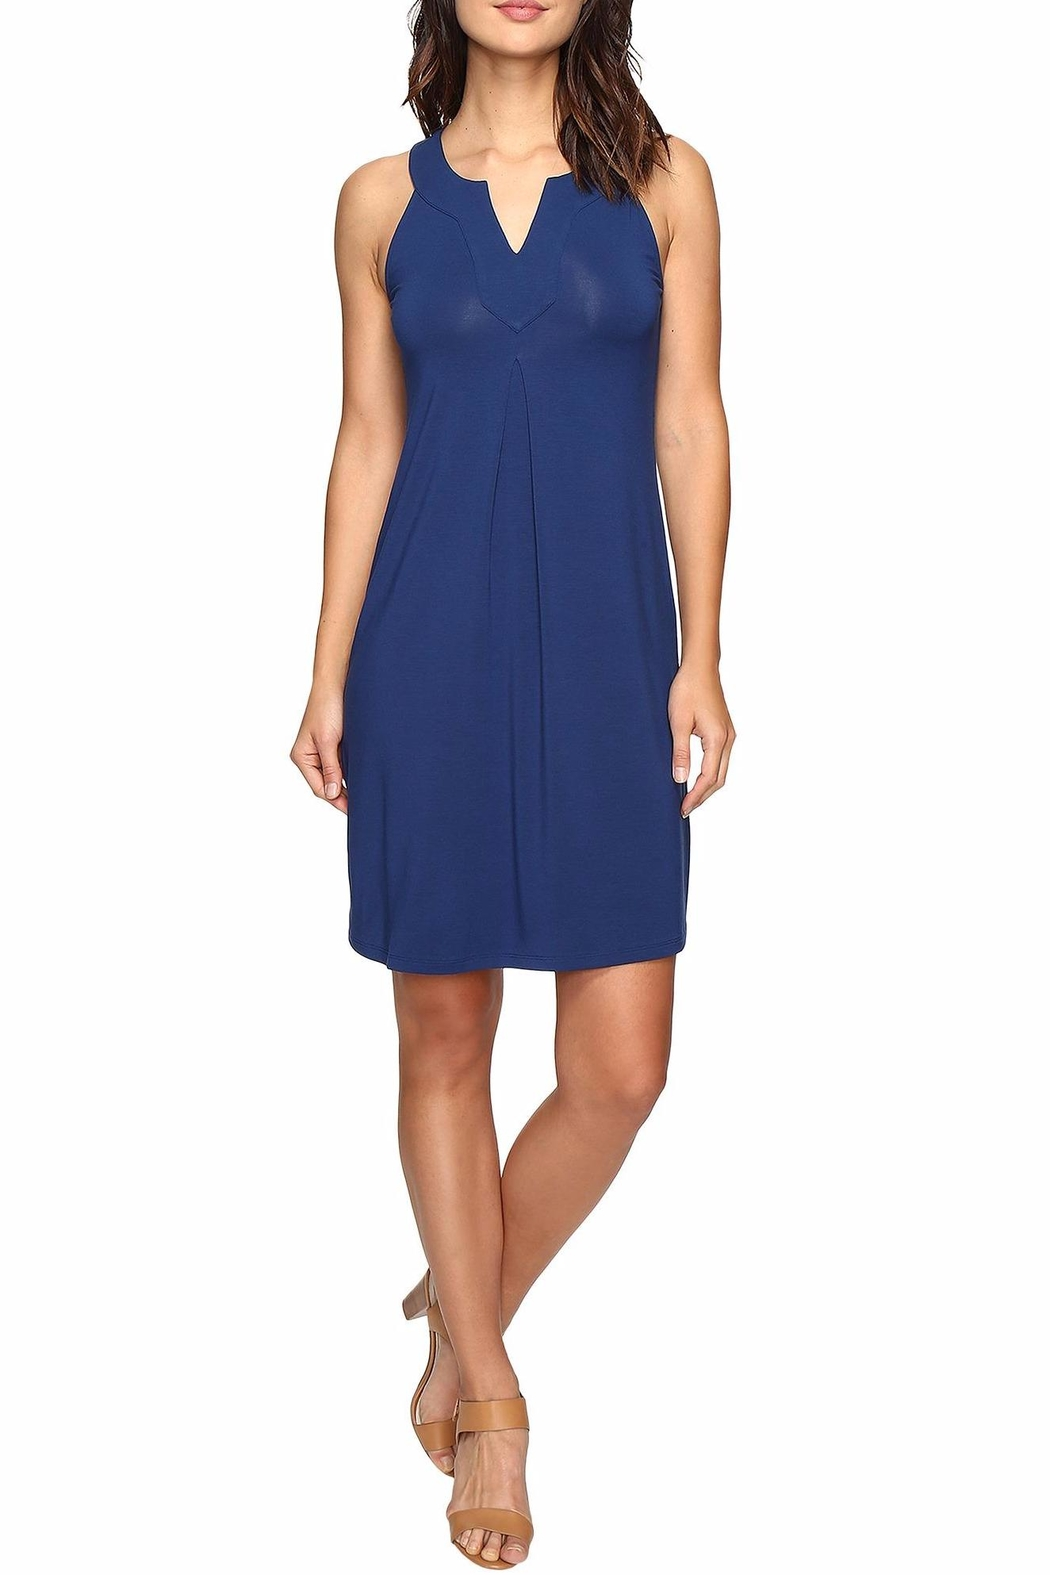 Tommy Bahama Tambour Notch Neck Dress - Front Cropped Image